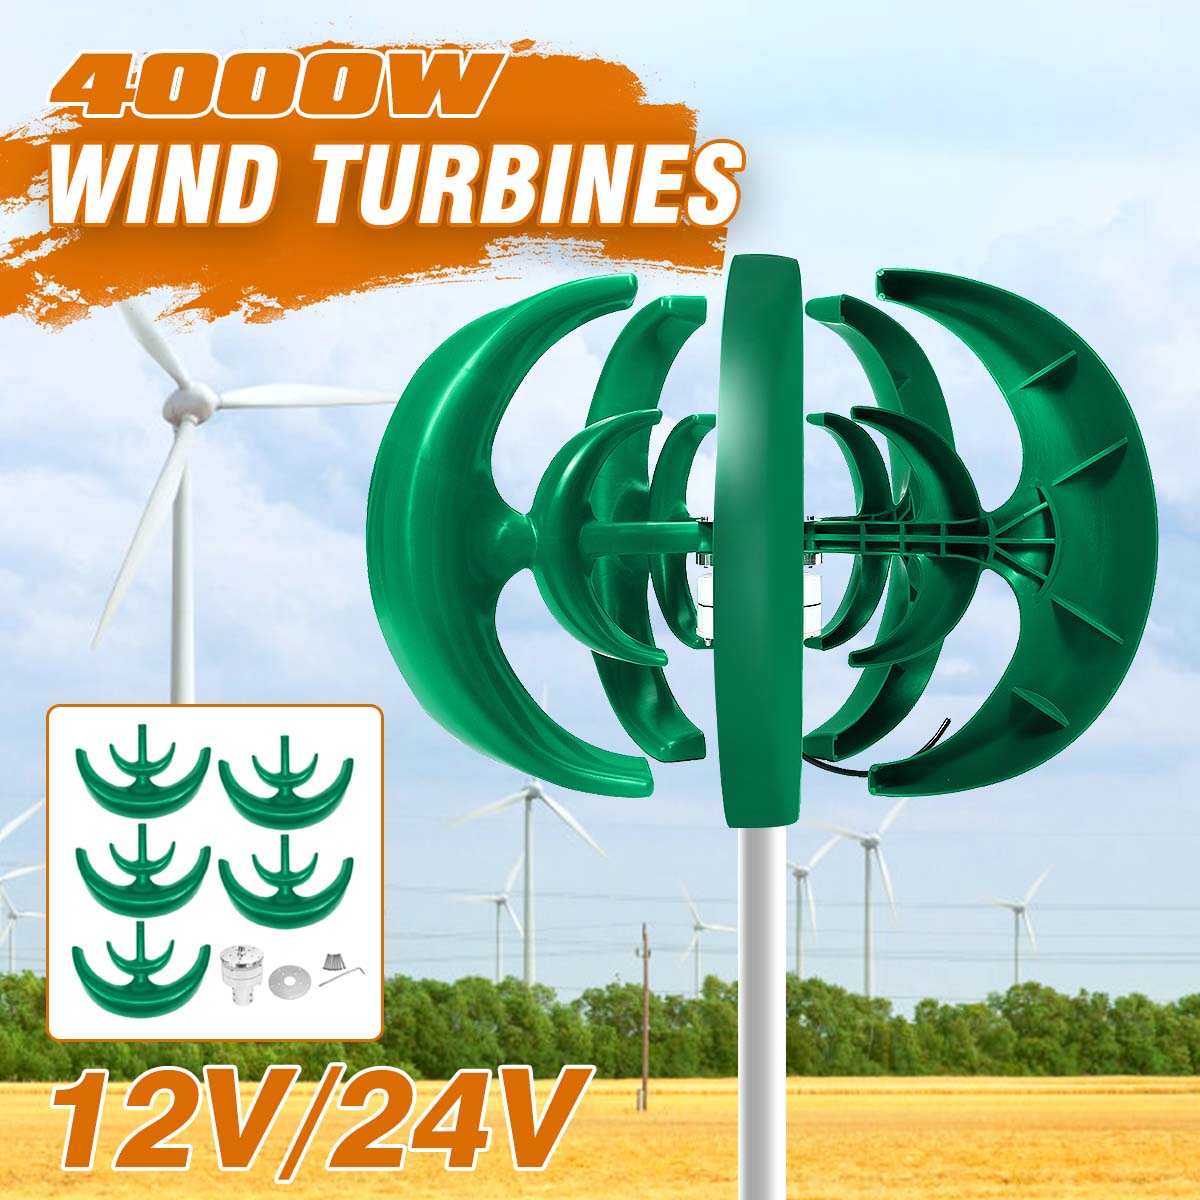 4000W 12V 24V Vertical Axis Wind Turbines Generator Lantern 10 Blades Motor Kit Windmill Energy Charge Turbines For Home Camping